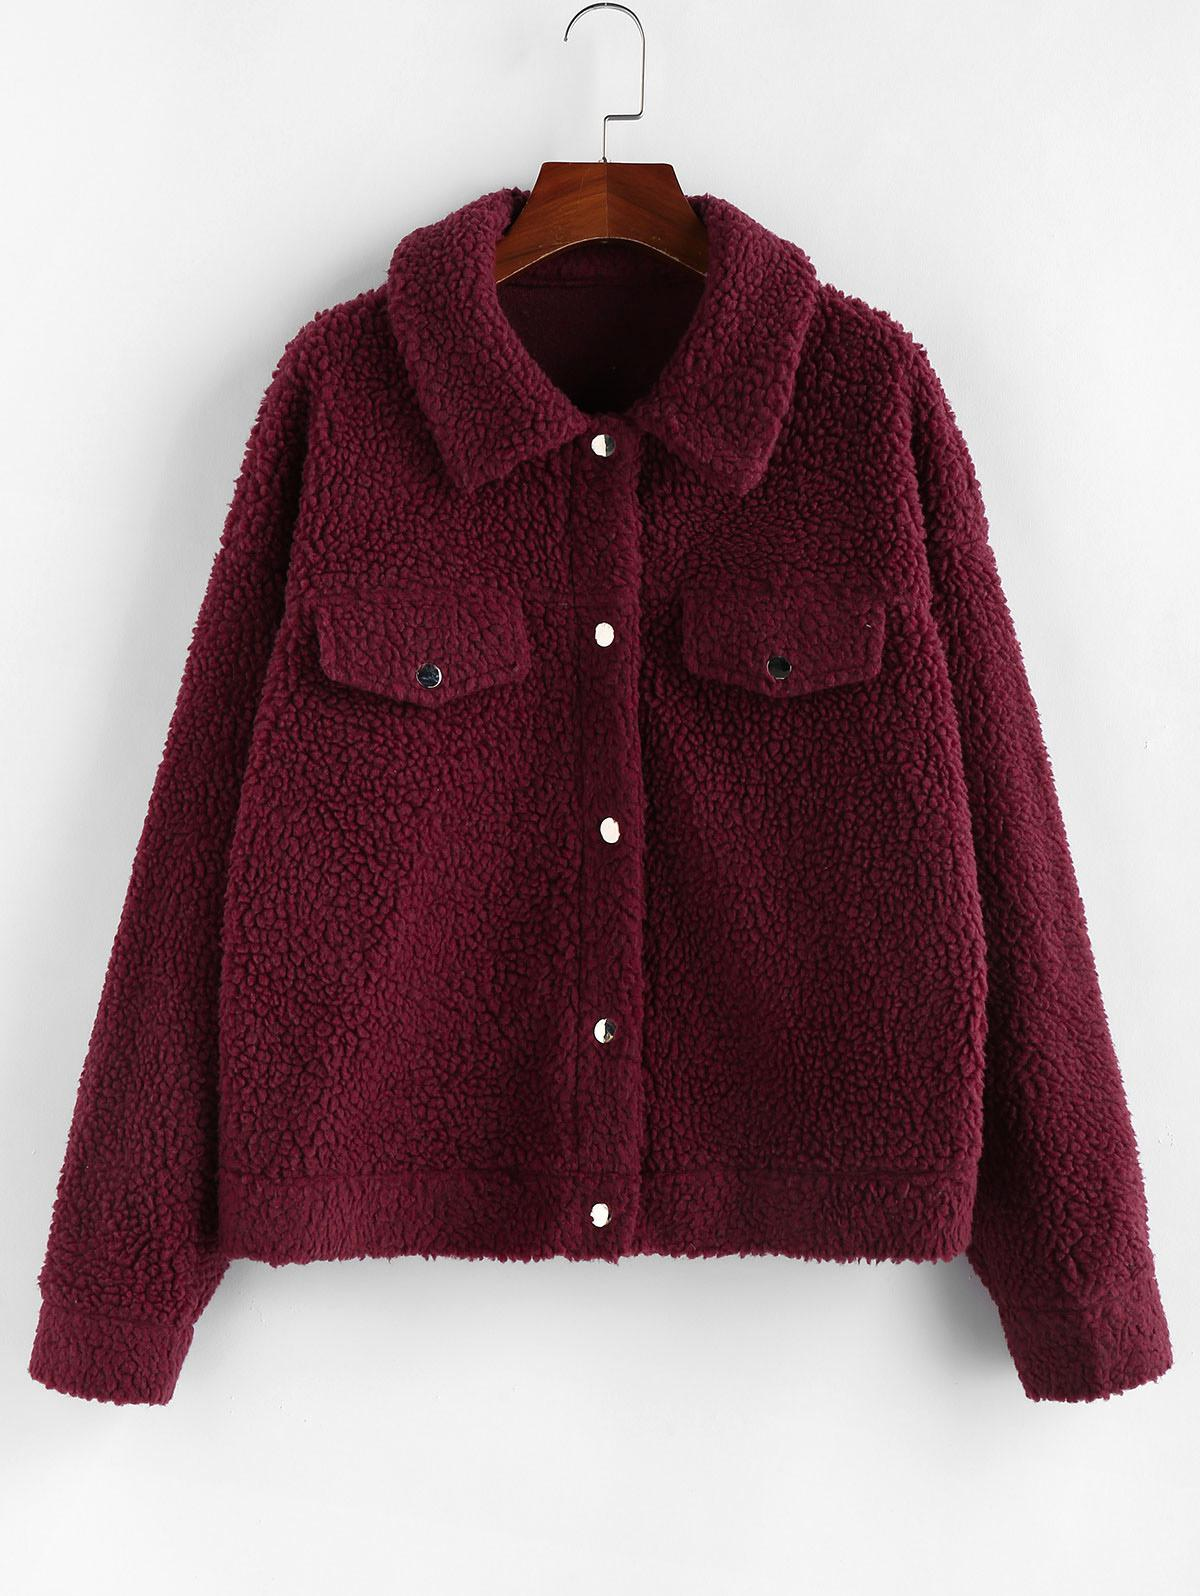 ZAFUL Drop Shoulder Button Up Teddy Coat